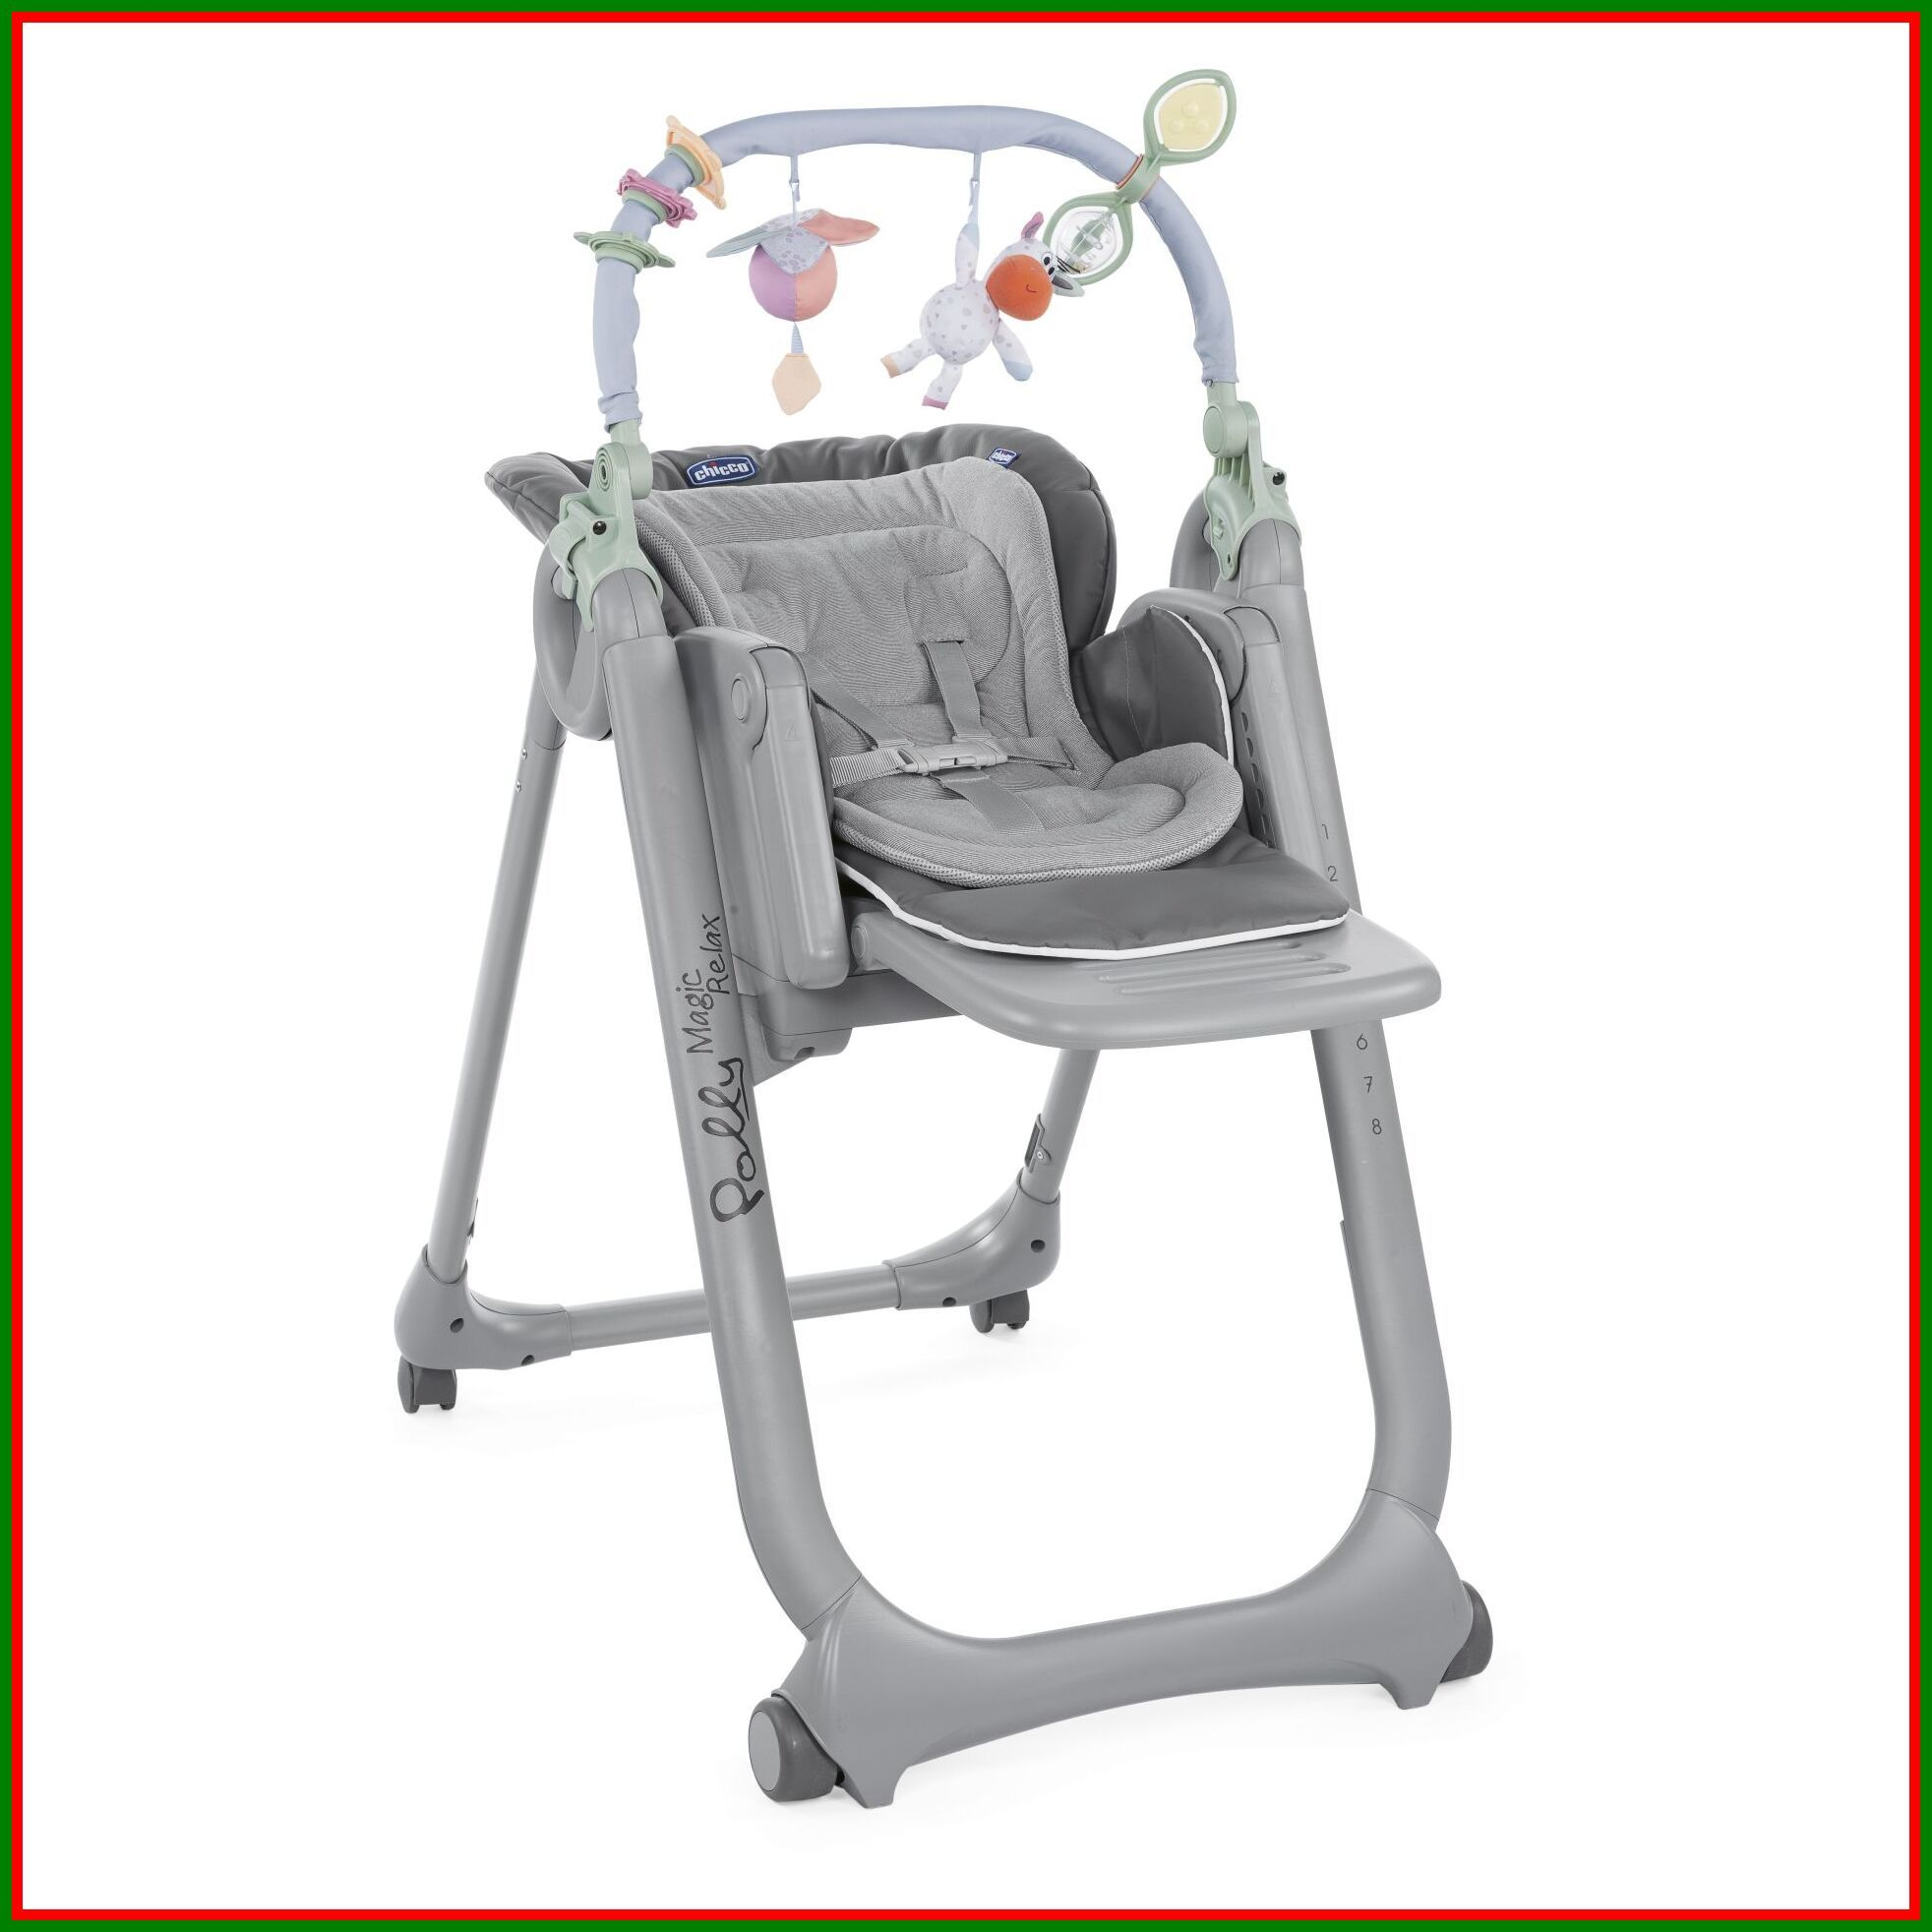 104 Reference Of High Chair Chicco Polly Magic In 2020 High Chair Chair Baby High Chair